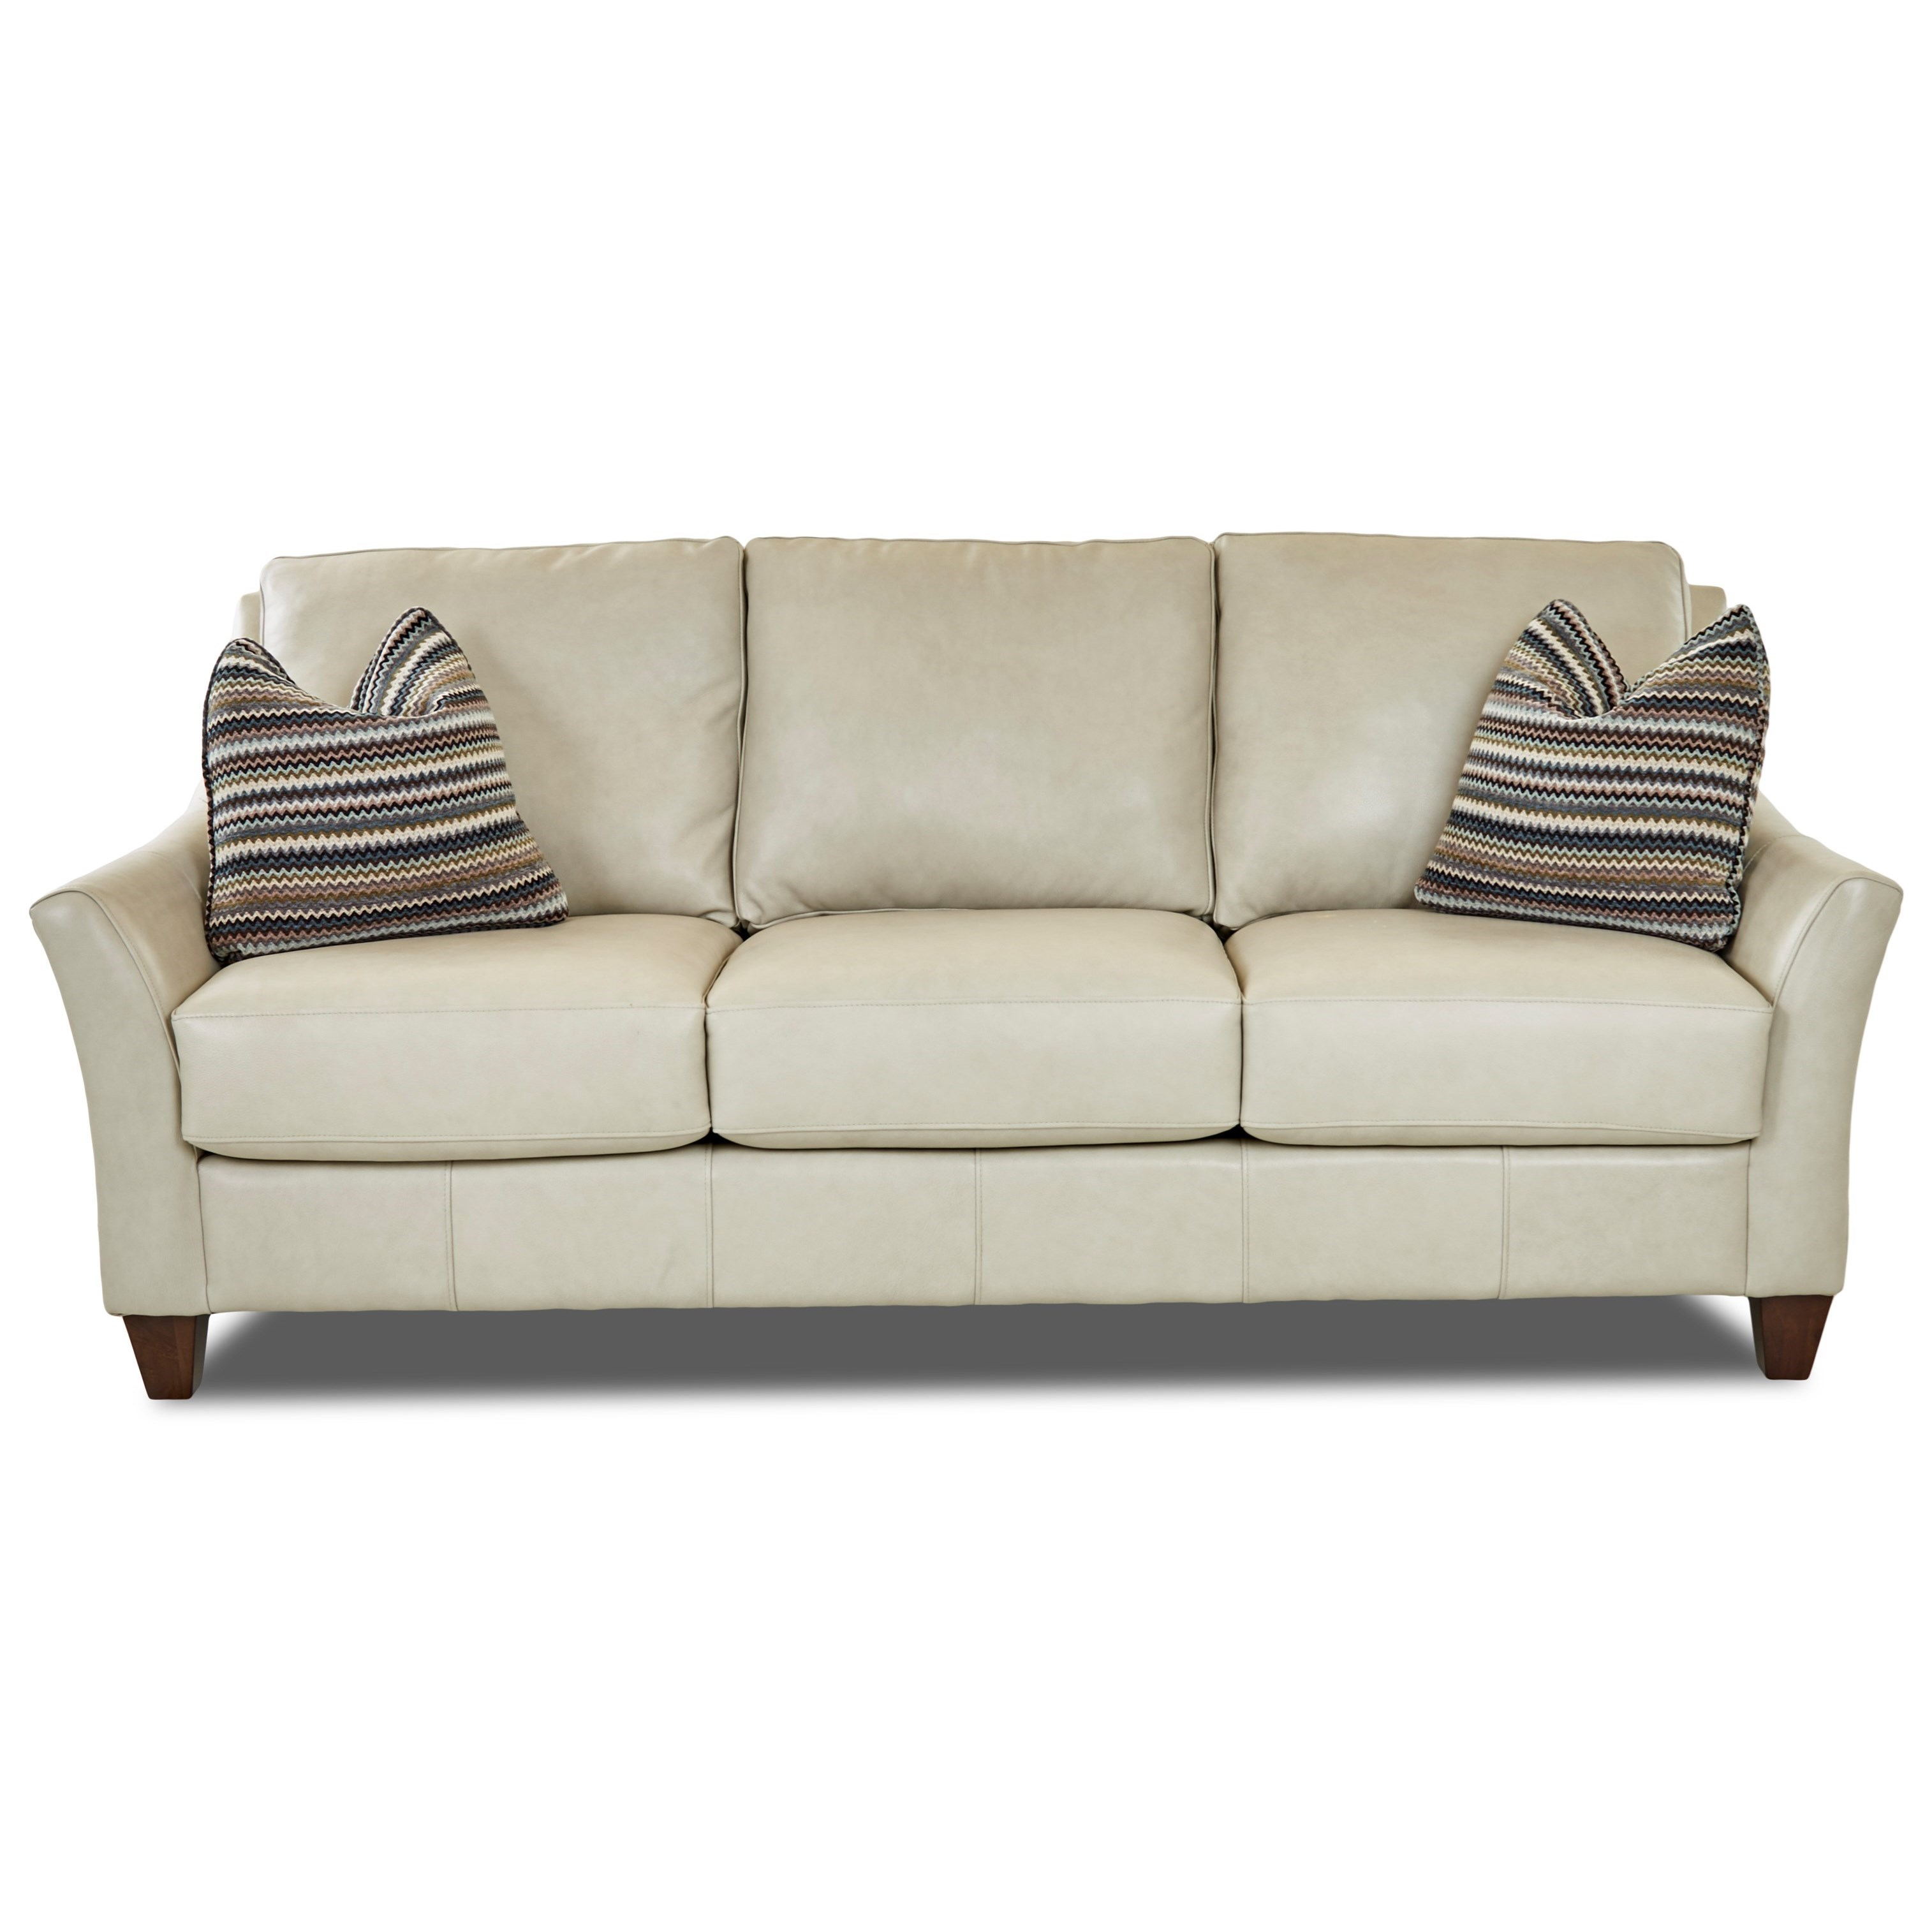 Joanna Sofa w/ Arm Pillows by Klaussner at Northeast Factory Direct